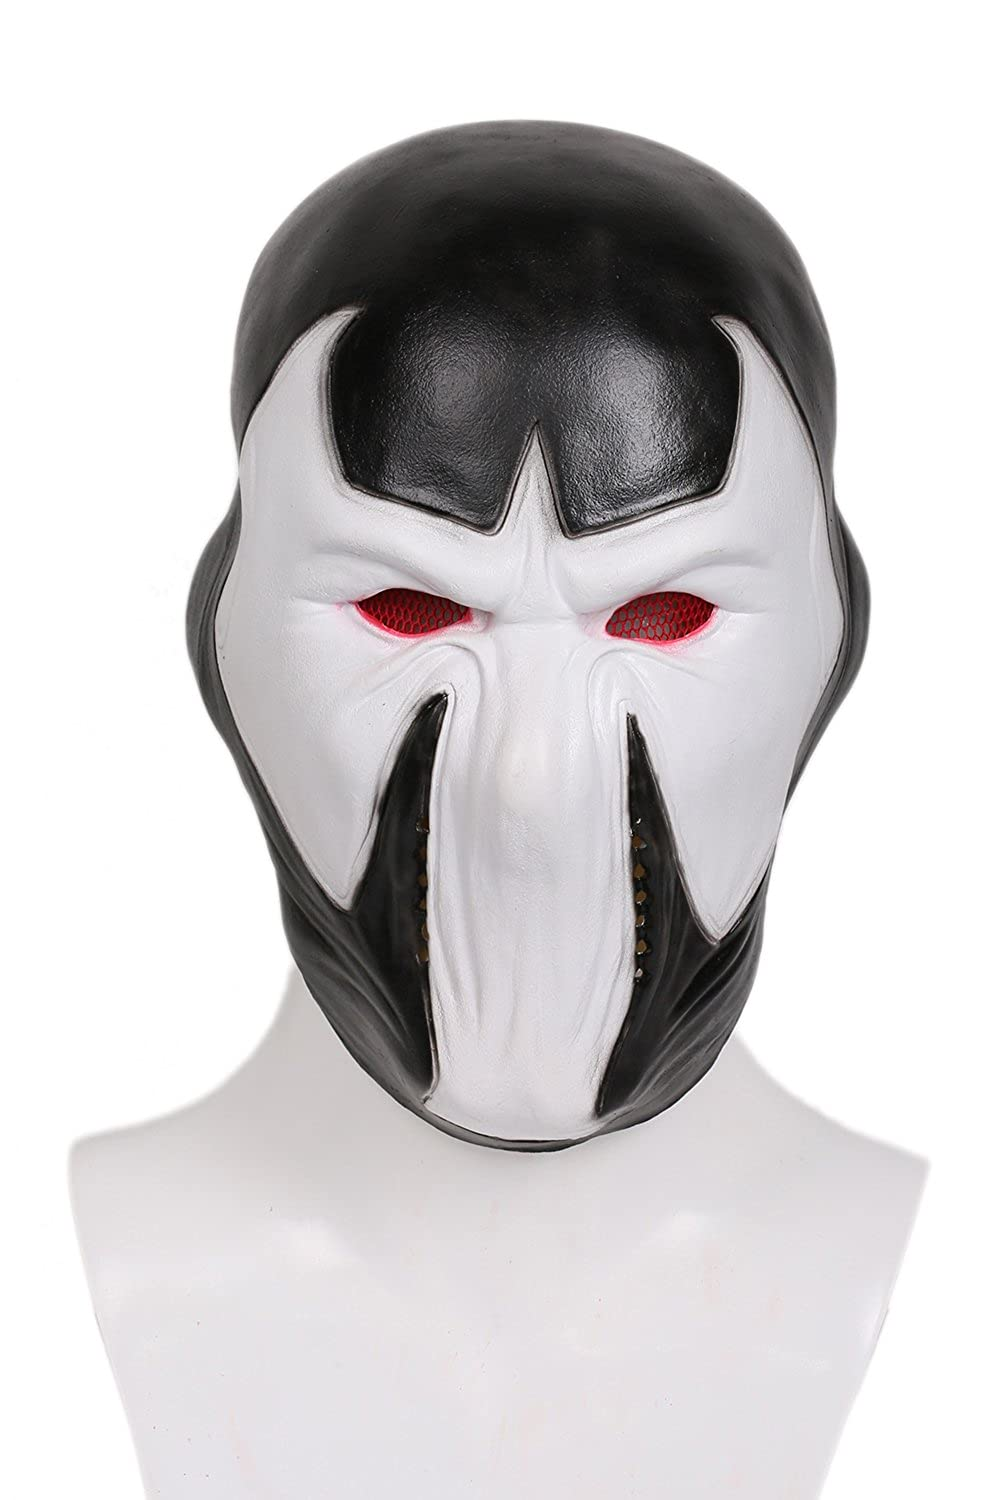 Bane Maske Cosplay Erwachsene Herren Classic Deluxe Latex Helm Halloween Fancy Dress Kostüm Zubehör